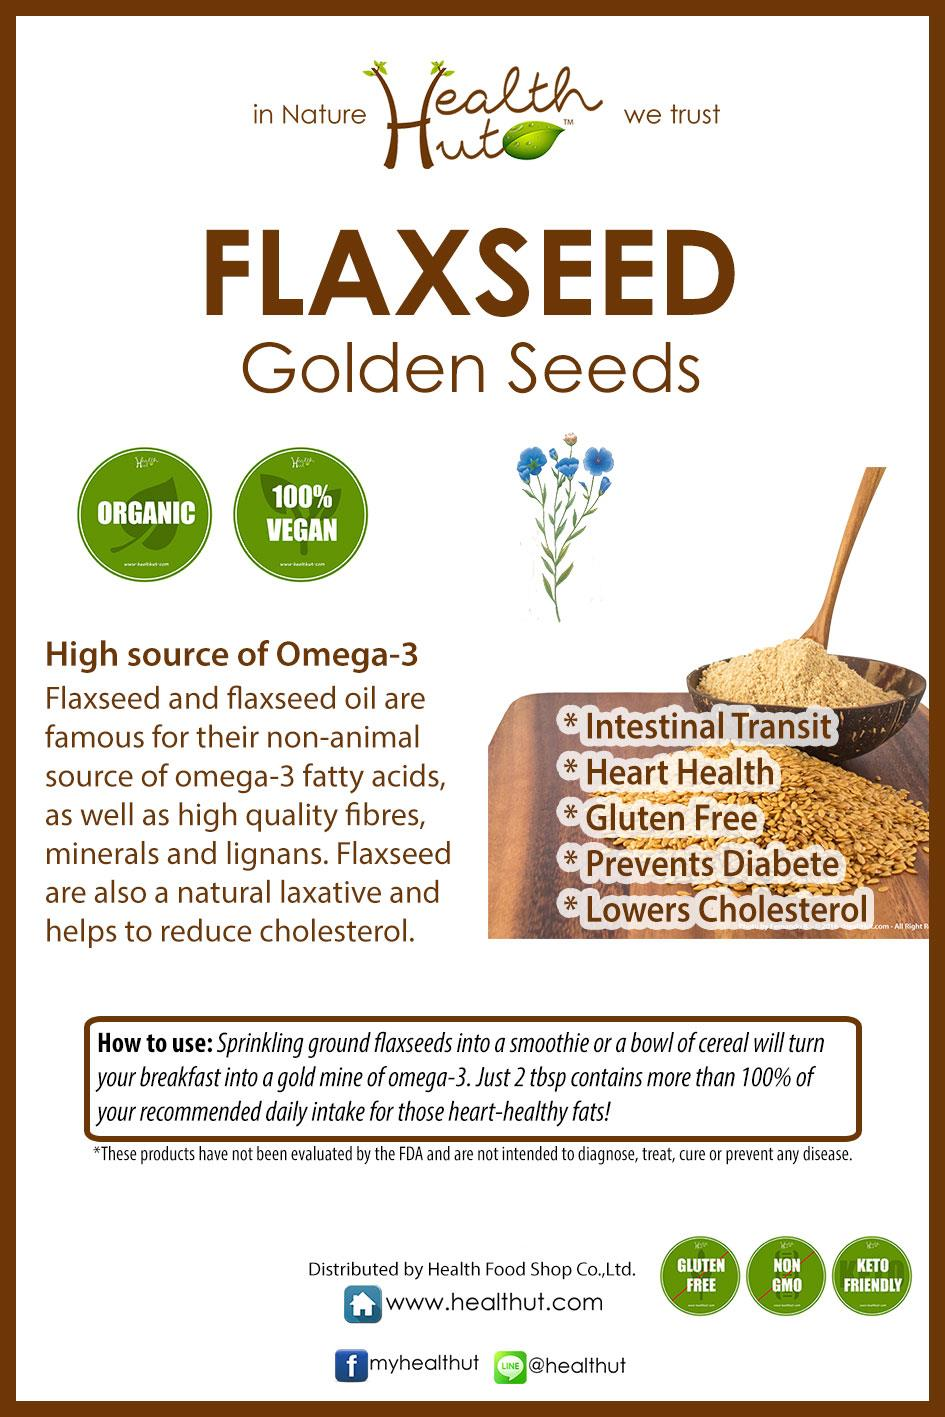 Flax Seed Golden